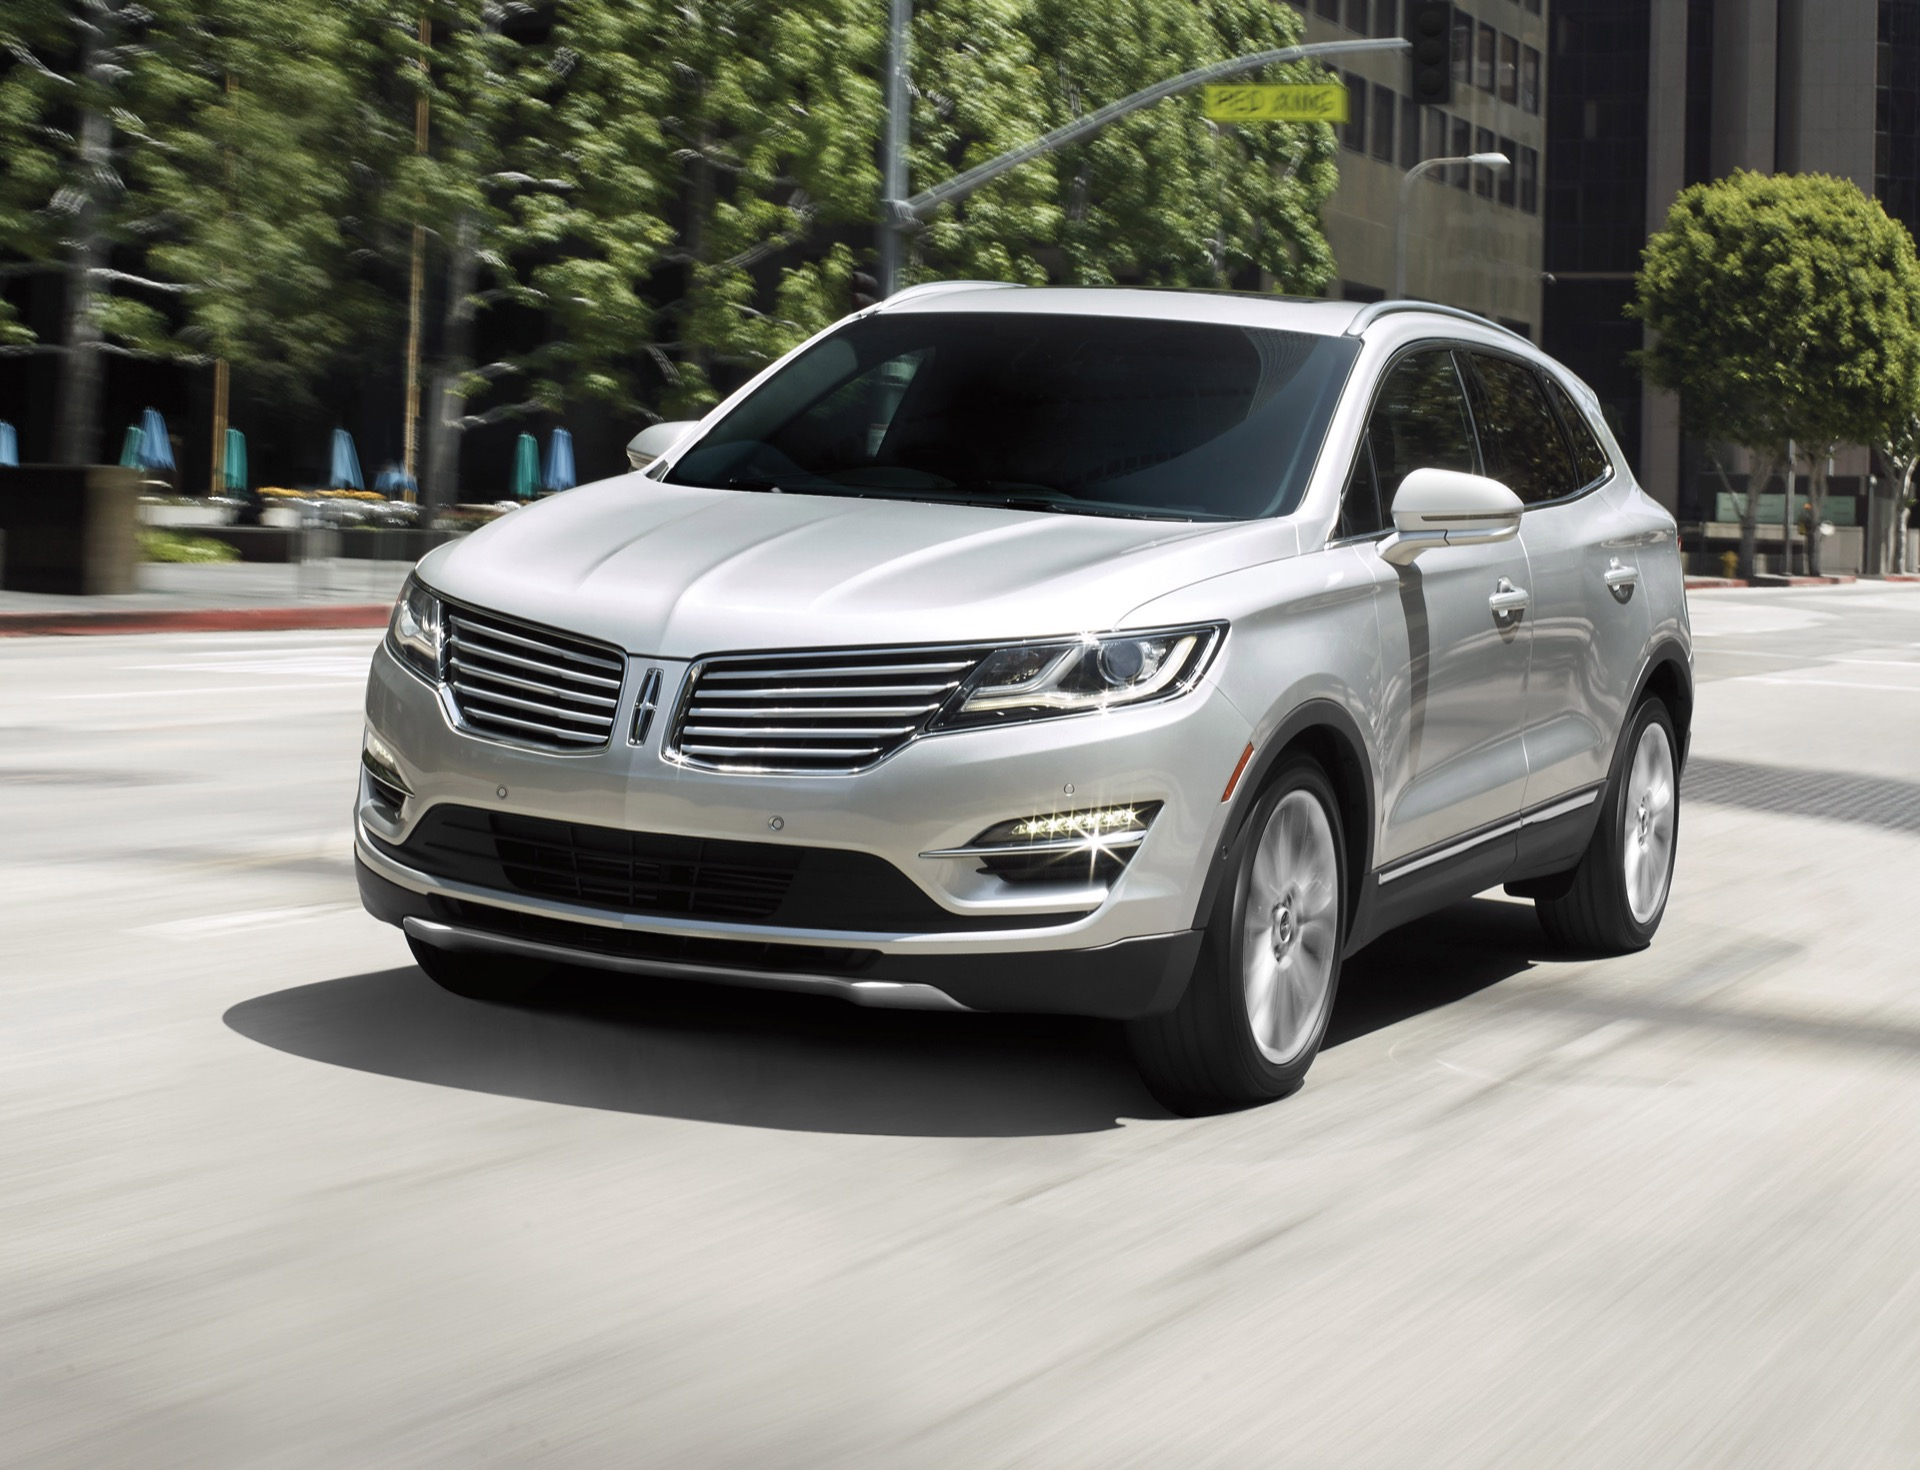 Bmw Of Fresno >> 2016 Lincoln MKC Review, Ratings, Specs, Prices, and Photos - The Car Connection